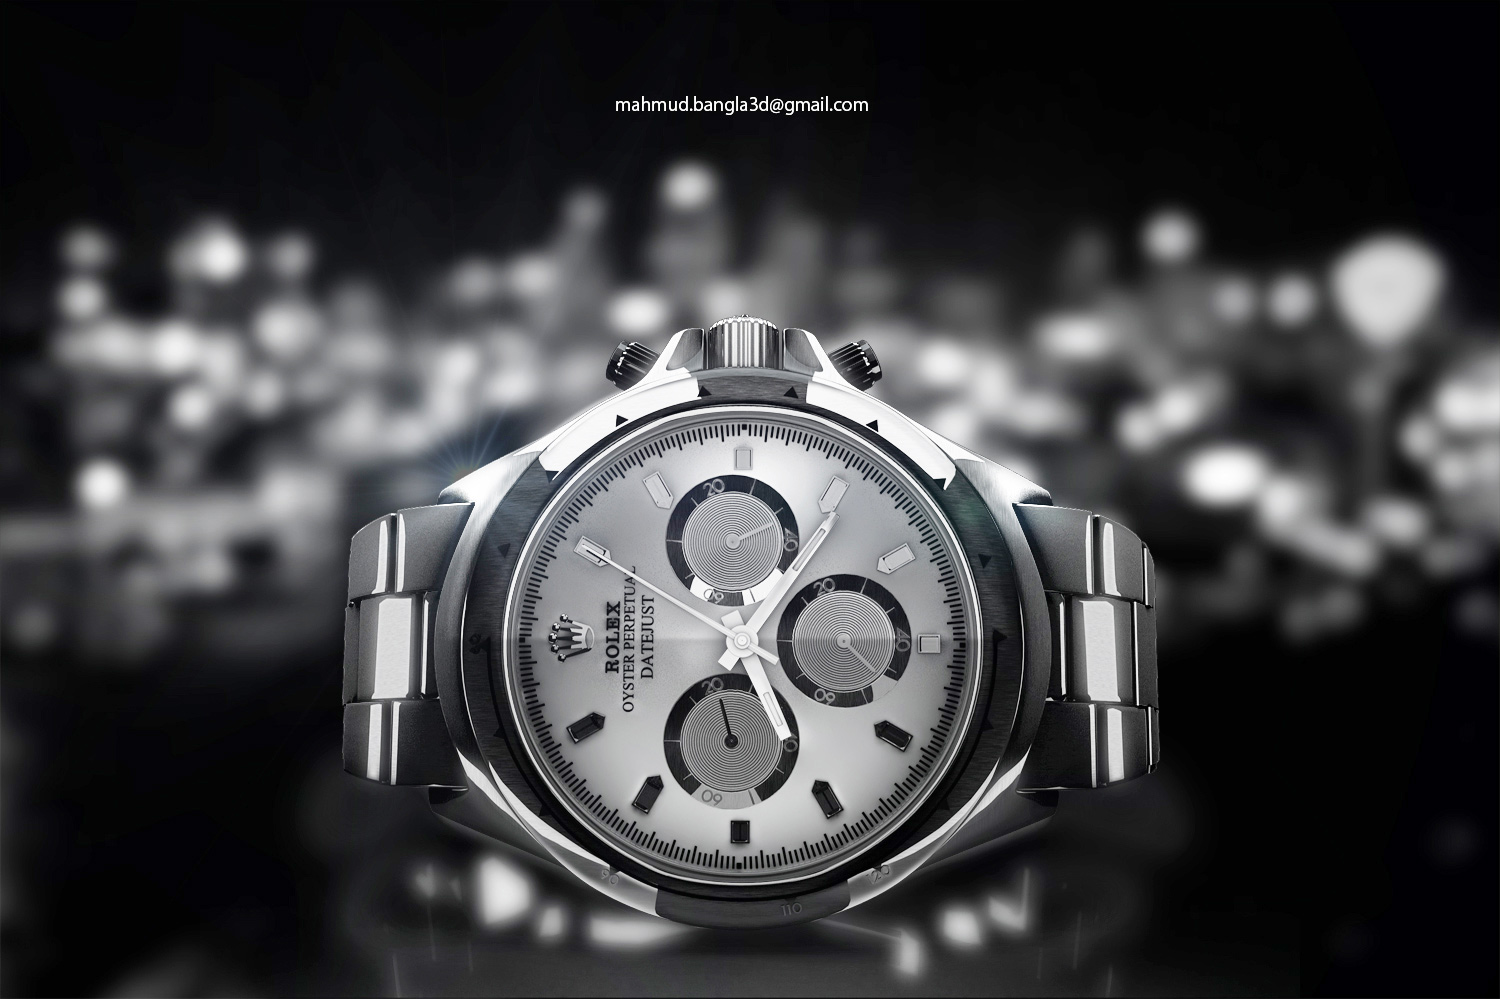 Showcasing Product Visualization here 3D model - Watch Model I did to take part in a contest